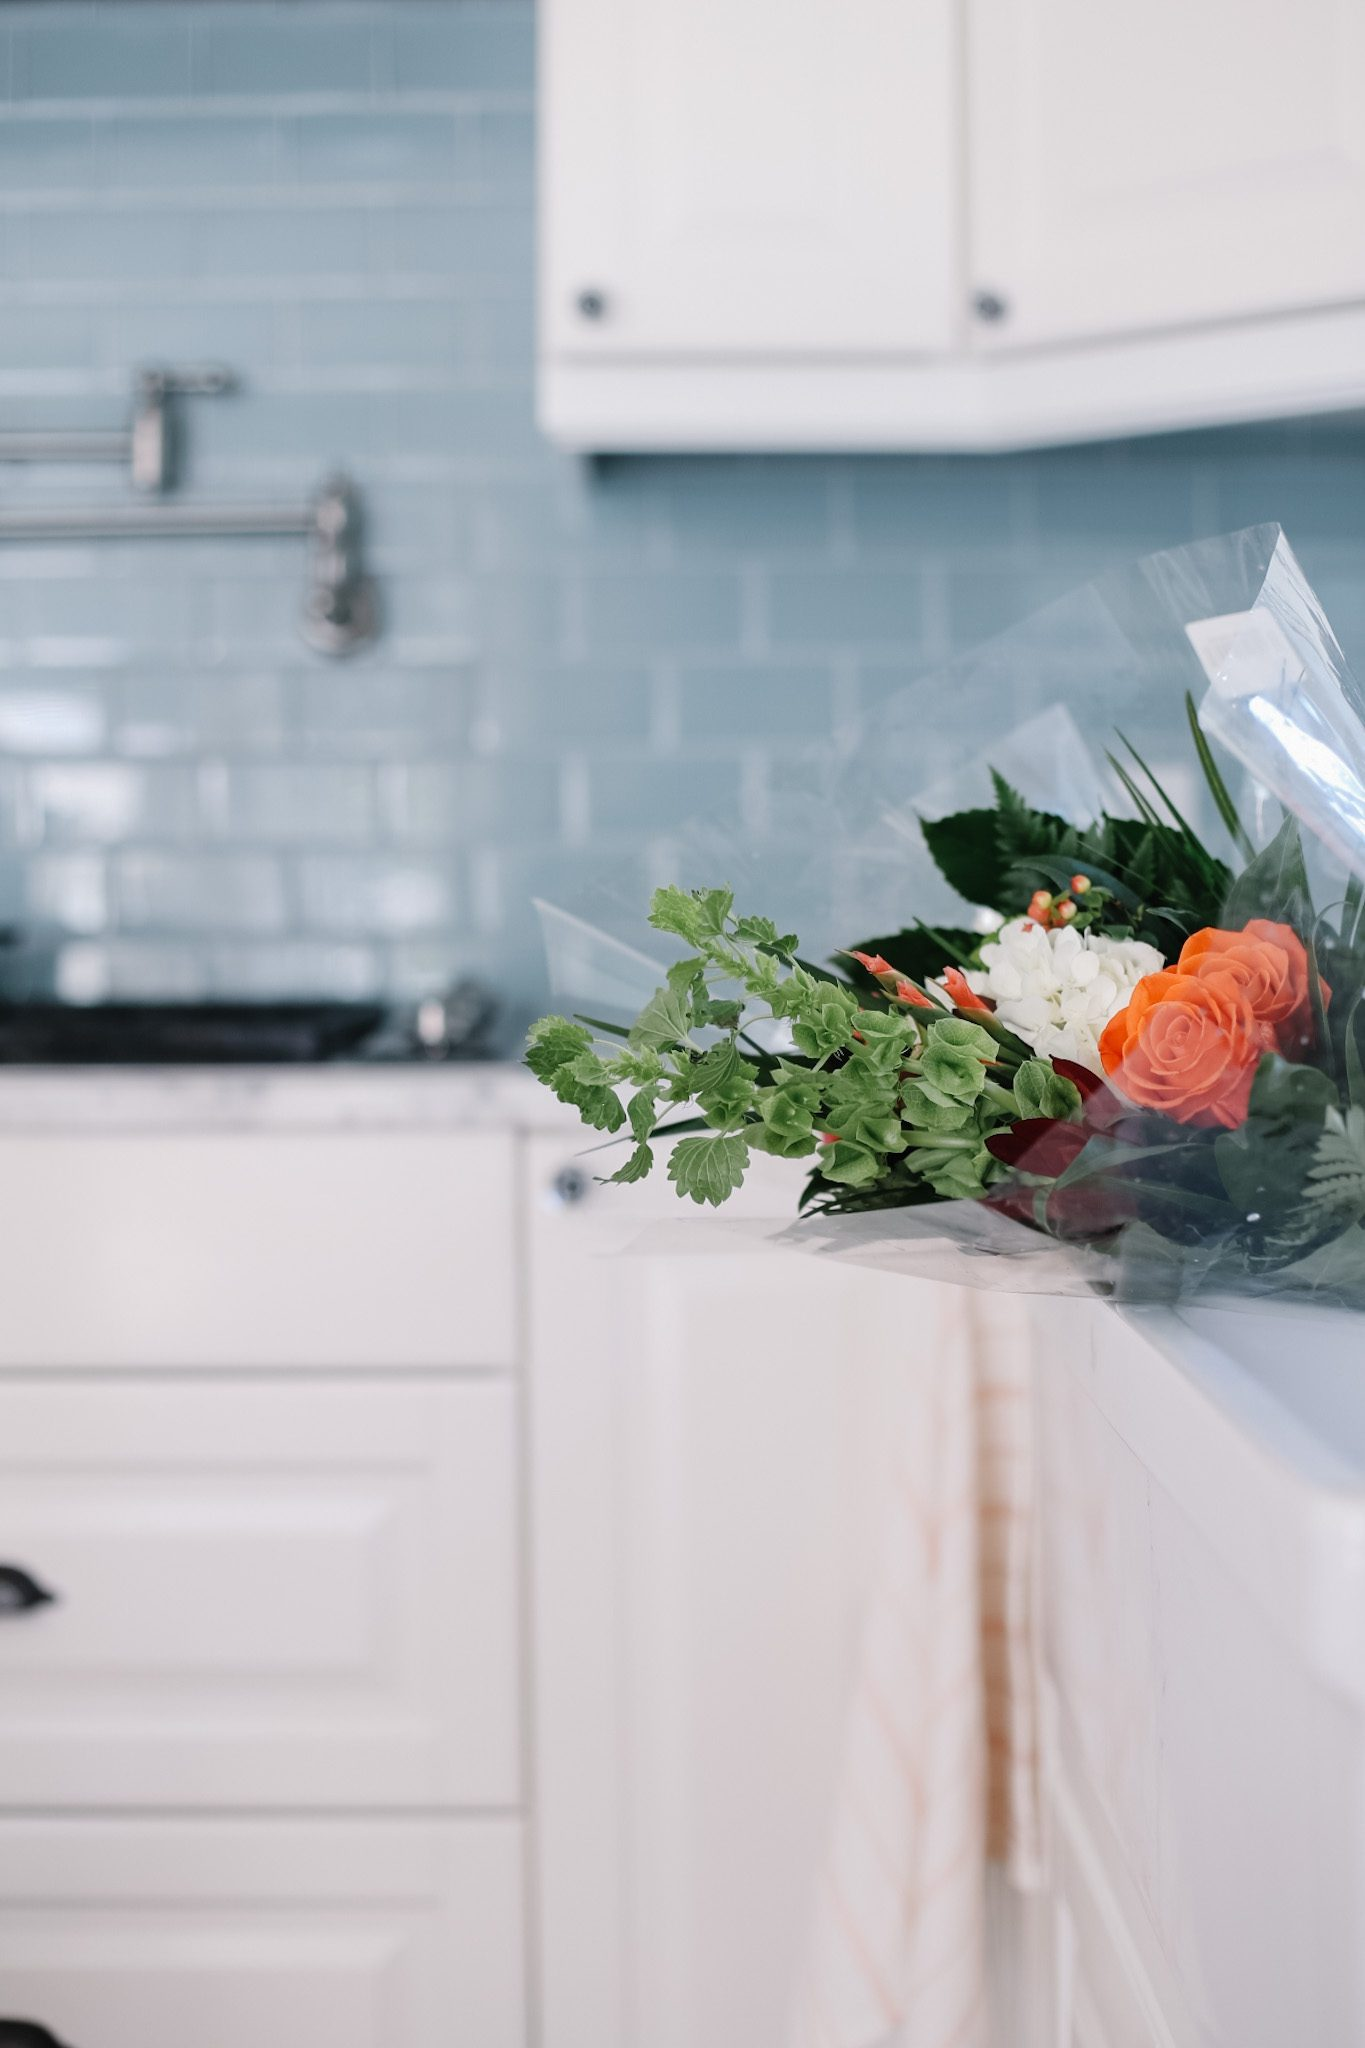 grocery store flowers sitting in the kitchen sink